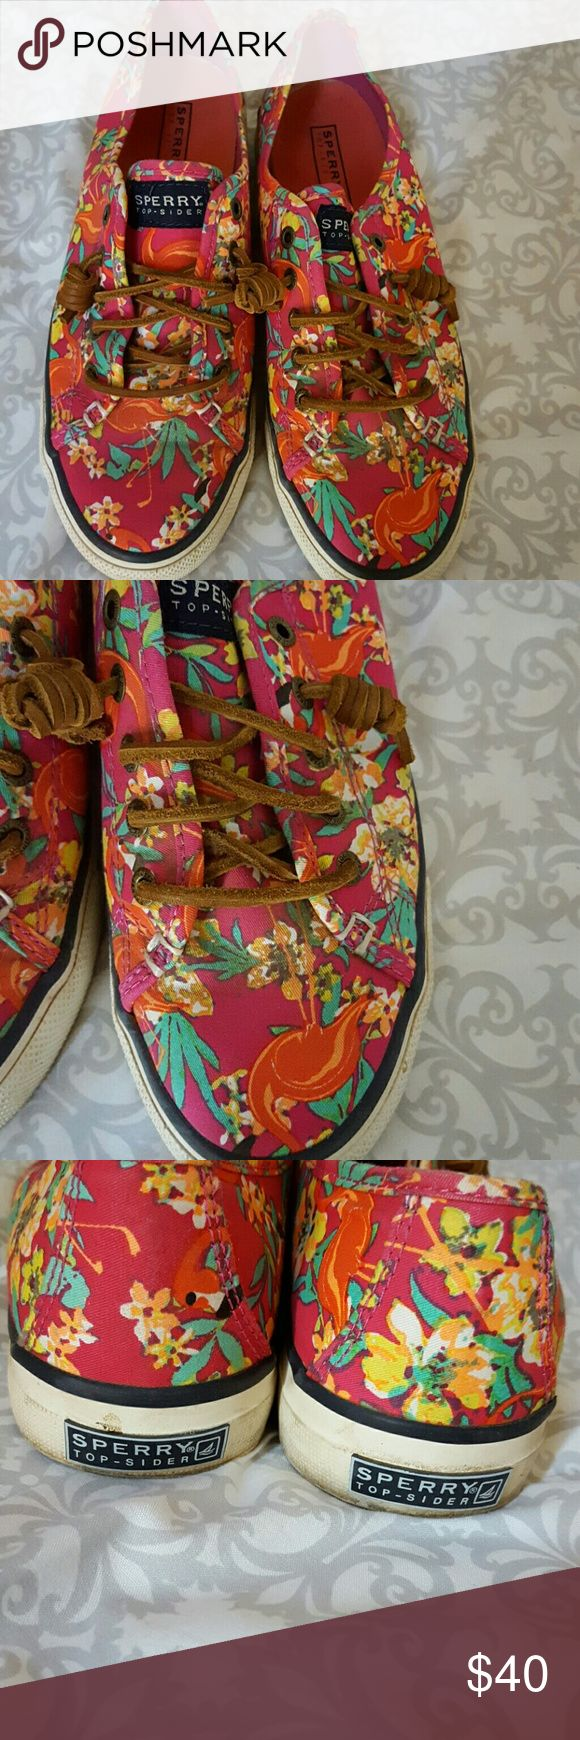 Sperry shoes sneakers Fun summer shoes sneakers like new Sperry Shoes